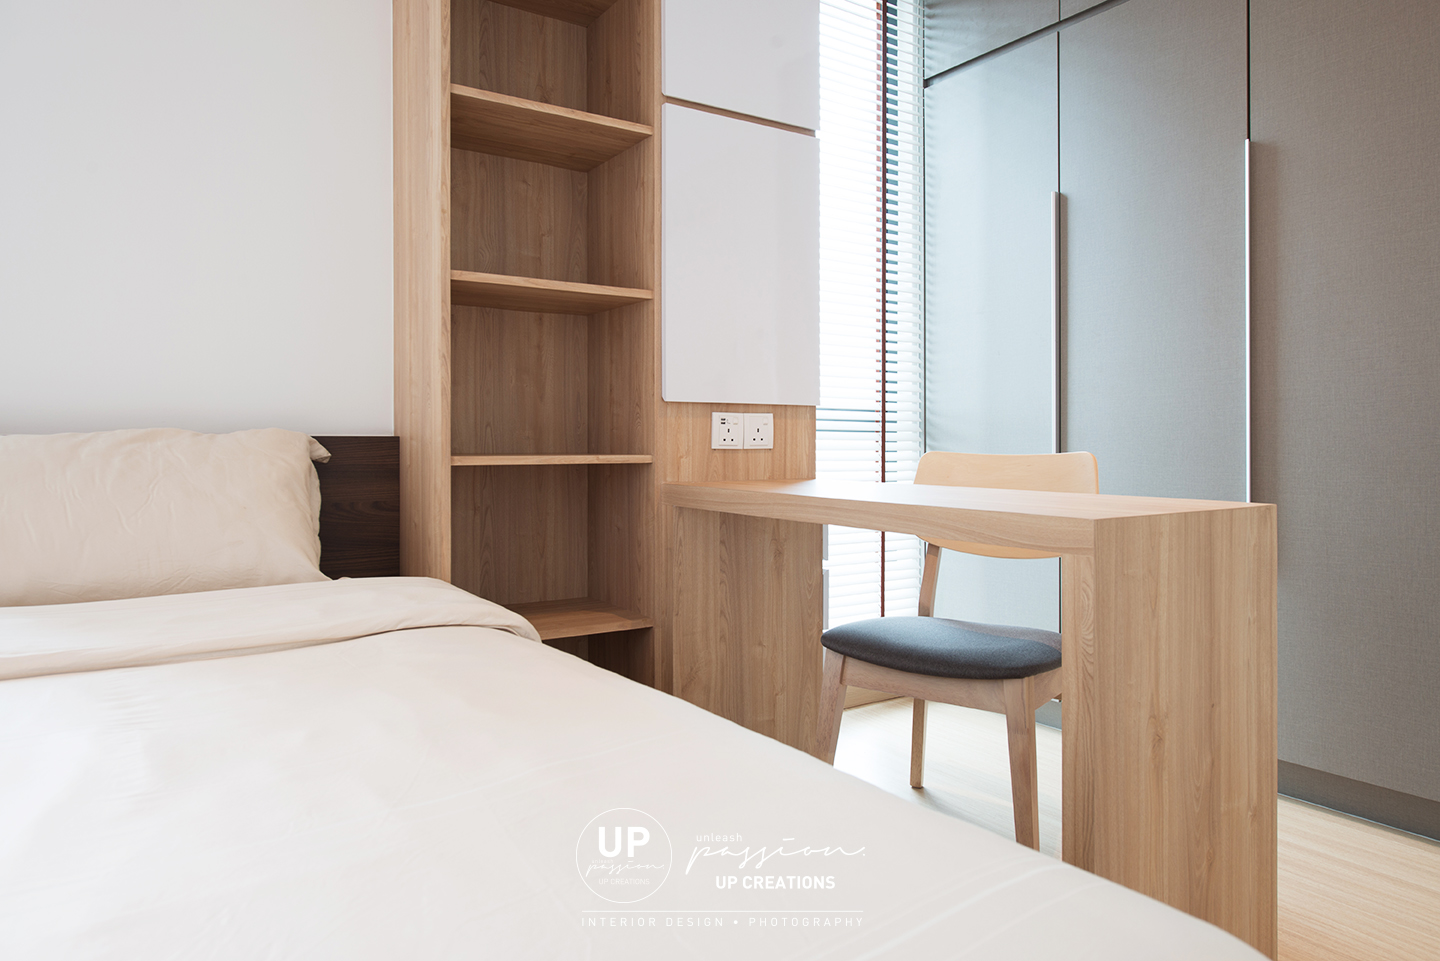 trinity aquata condo guest room with queen size bed and study desk as a divider in front wardrobe which also save space